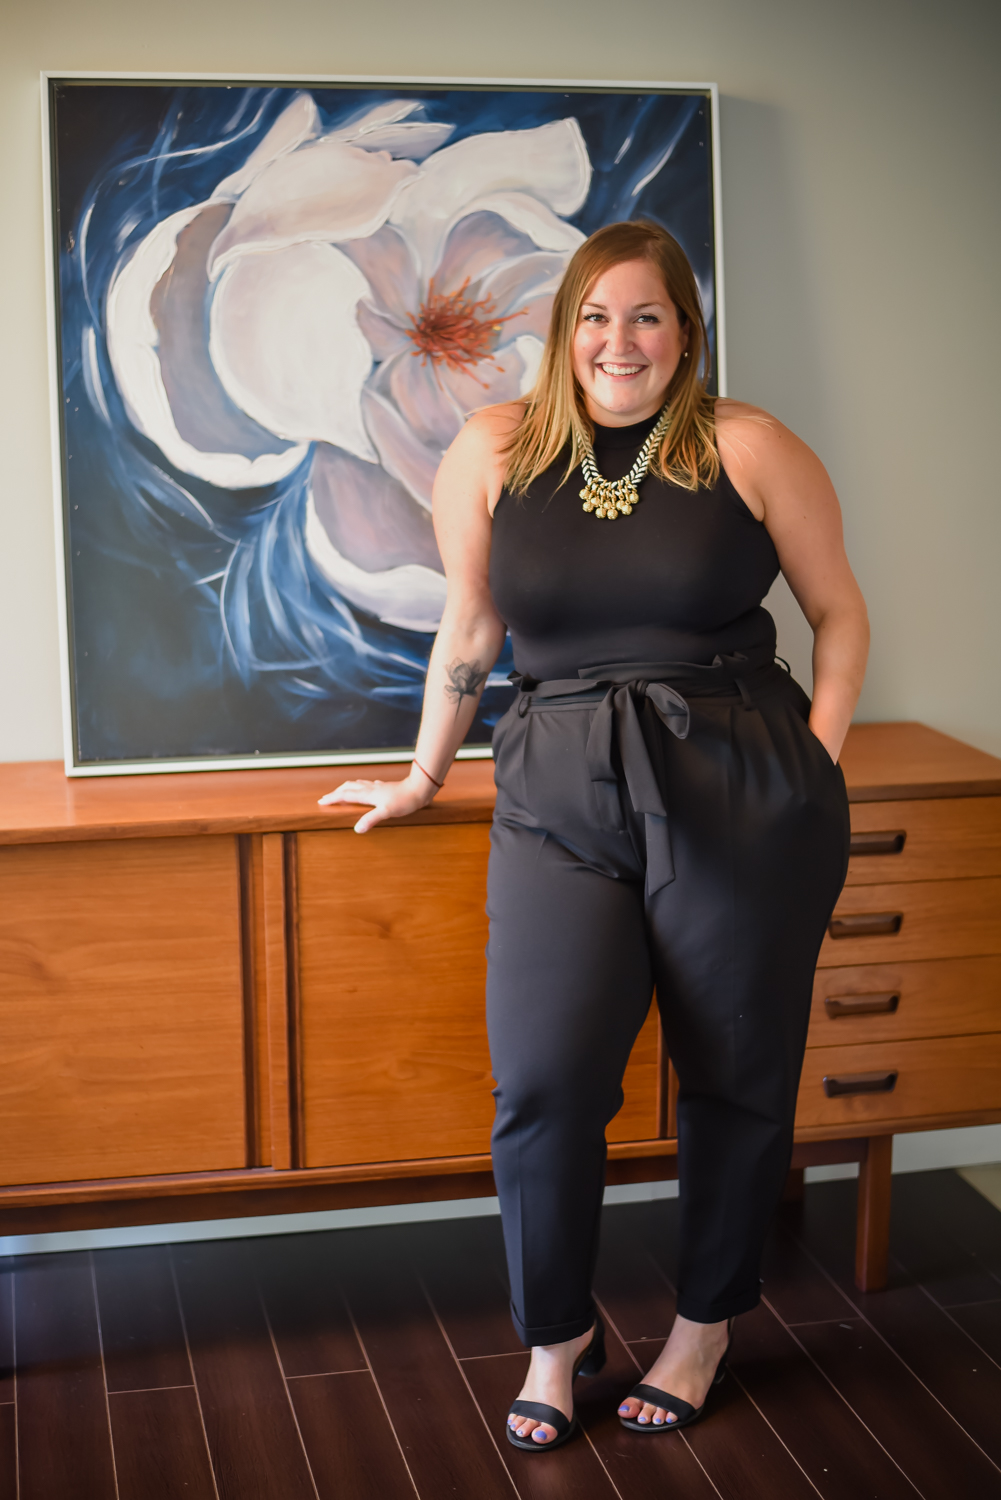 Lindsay gowan - Investment Advisor, Design specialist  Commercial and Residential Sales representative